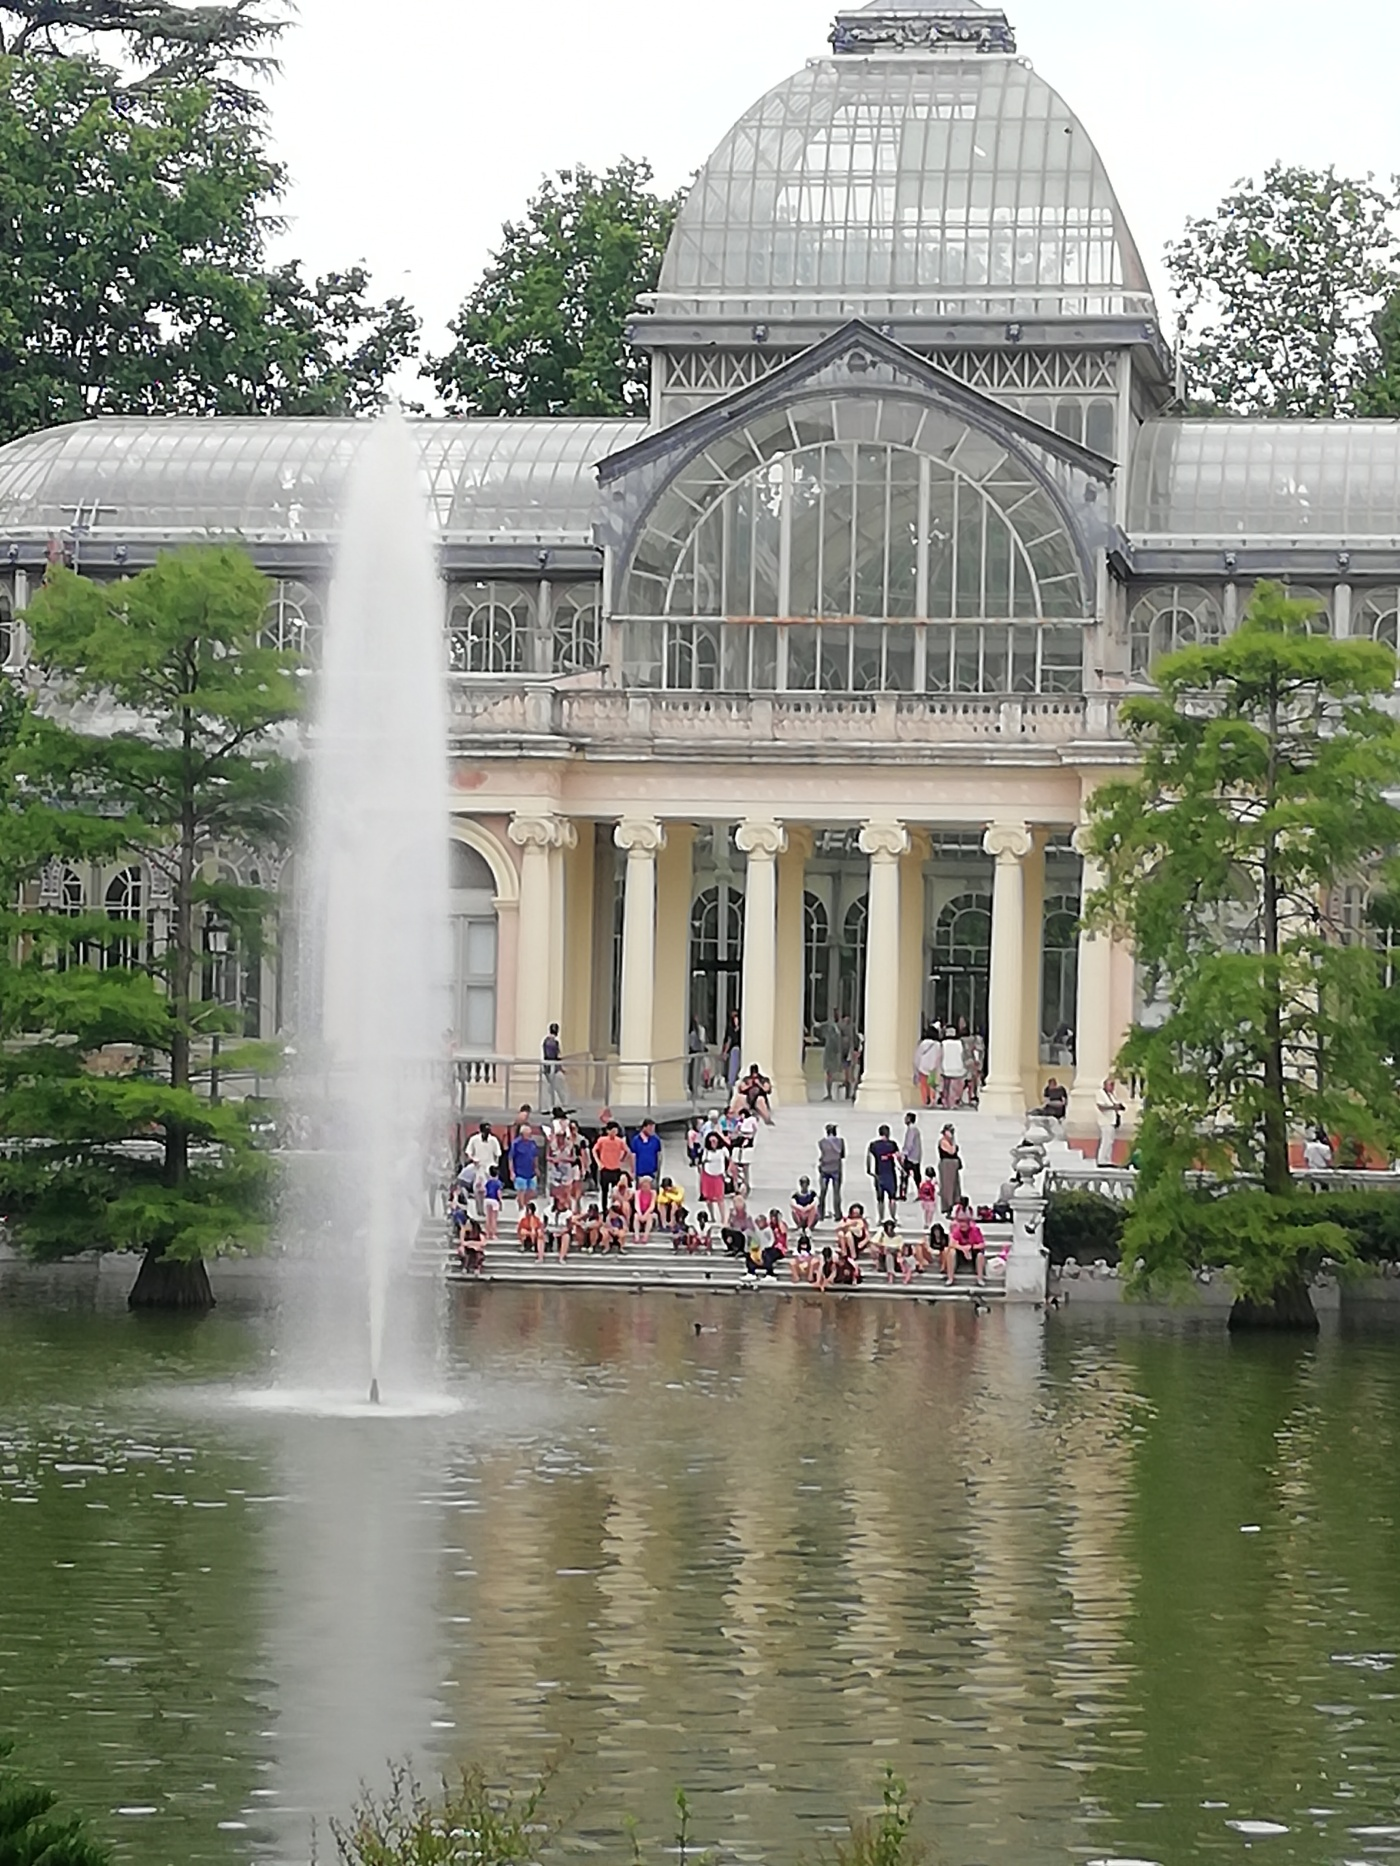 winter-of-67-palacio-de-cristal-madrid.jpg